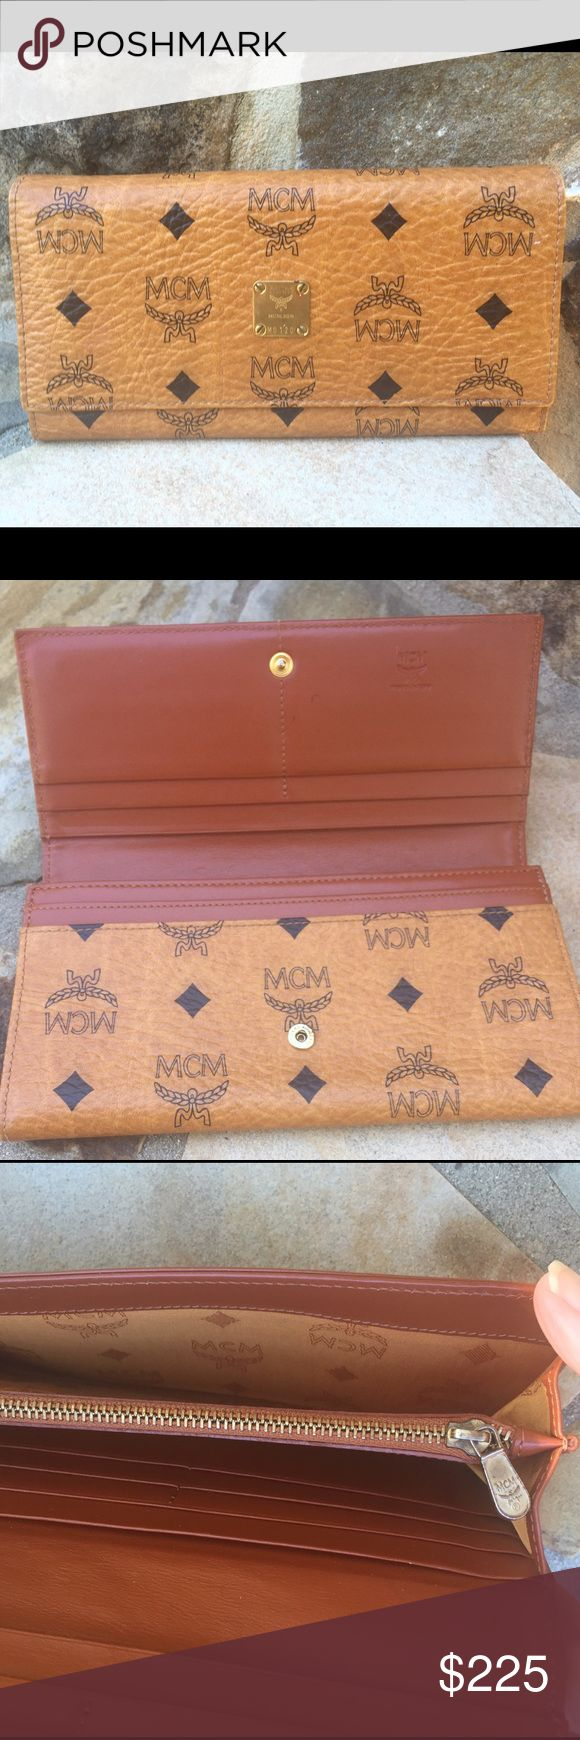 MCM Large logo Leather Wallet-Excellent Made Italy MCM large wallet lots of storage-10 slots for CC - 3 Large Slots and one zip spot for change- snap closure- Love this Excellent Condition. Made in Italy MCM Bags Wallets